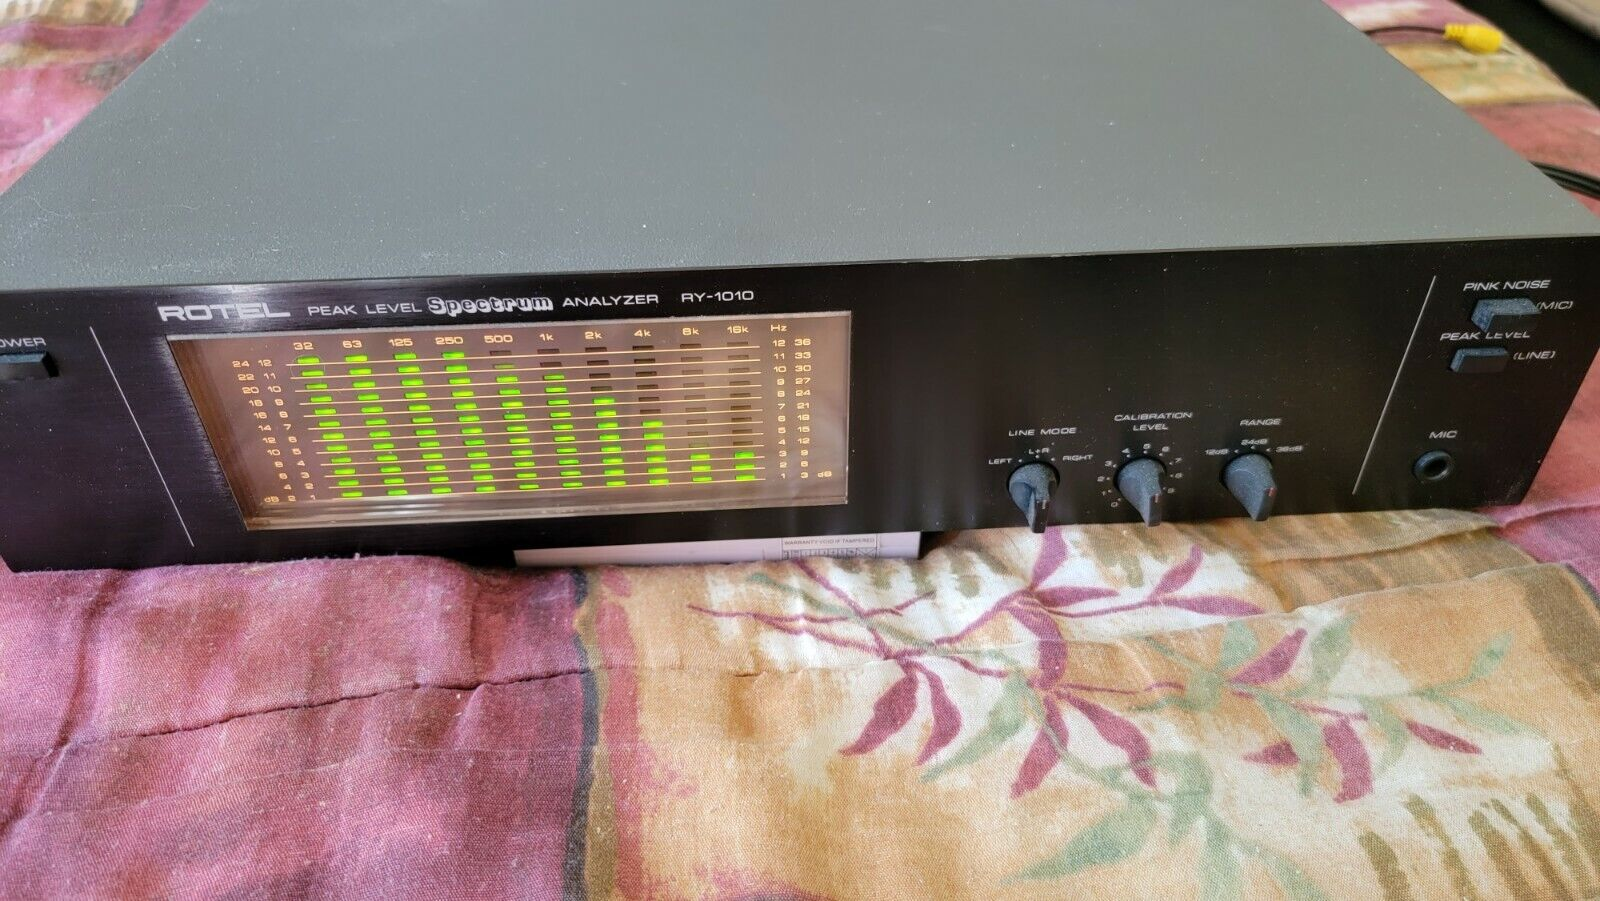 ROTEL RY-1010 💥very good💥 Vintage Stereo Equalizer Spectrum Analyzer. Buy it now for 495.00